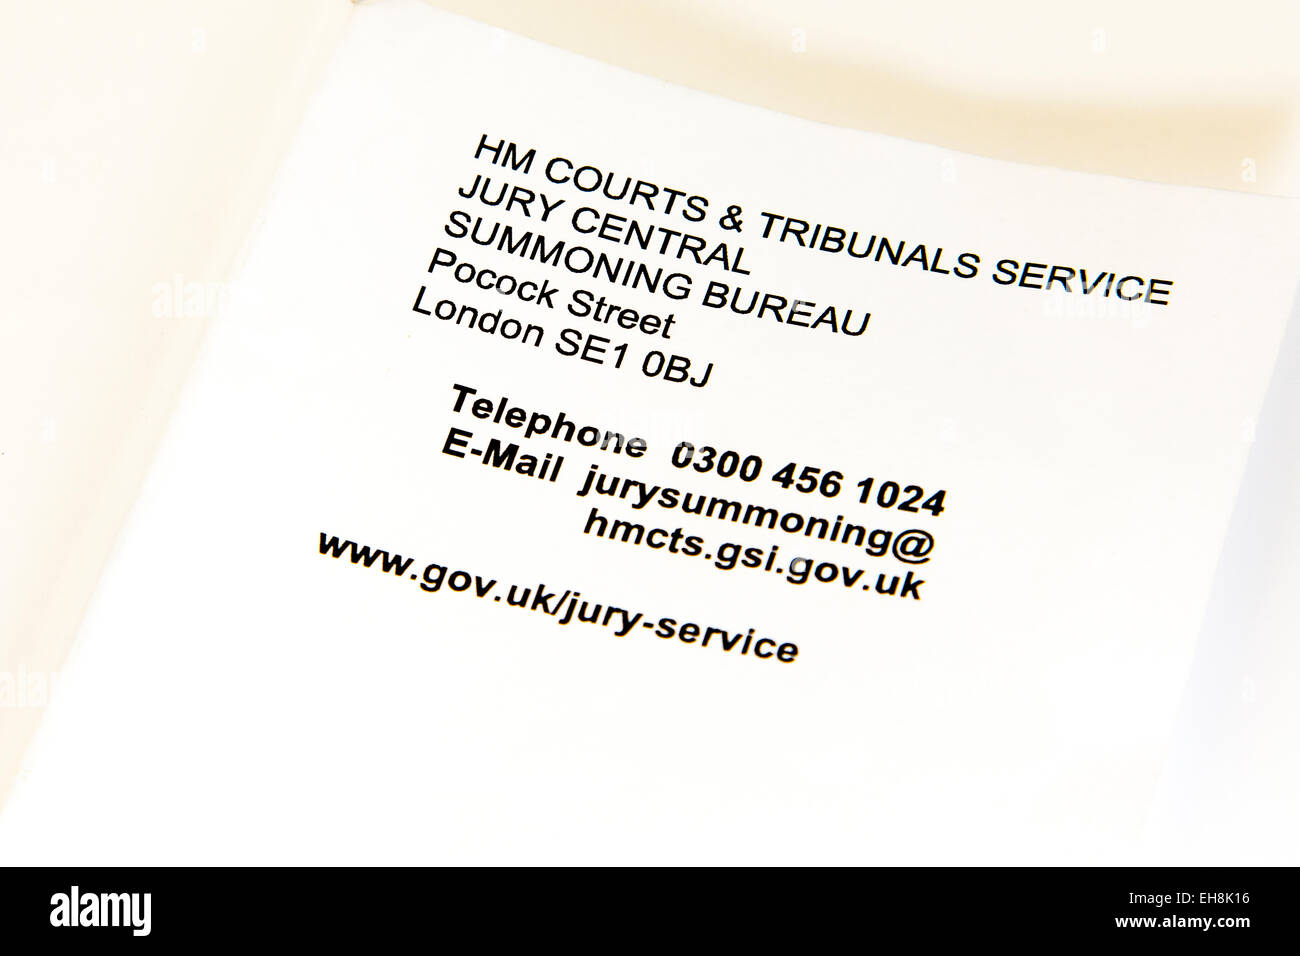 Jury summons letter letterhead crown court appearance Lincoln uk england 2015 tribunals service summoning bureau - Stock Image